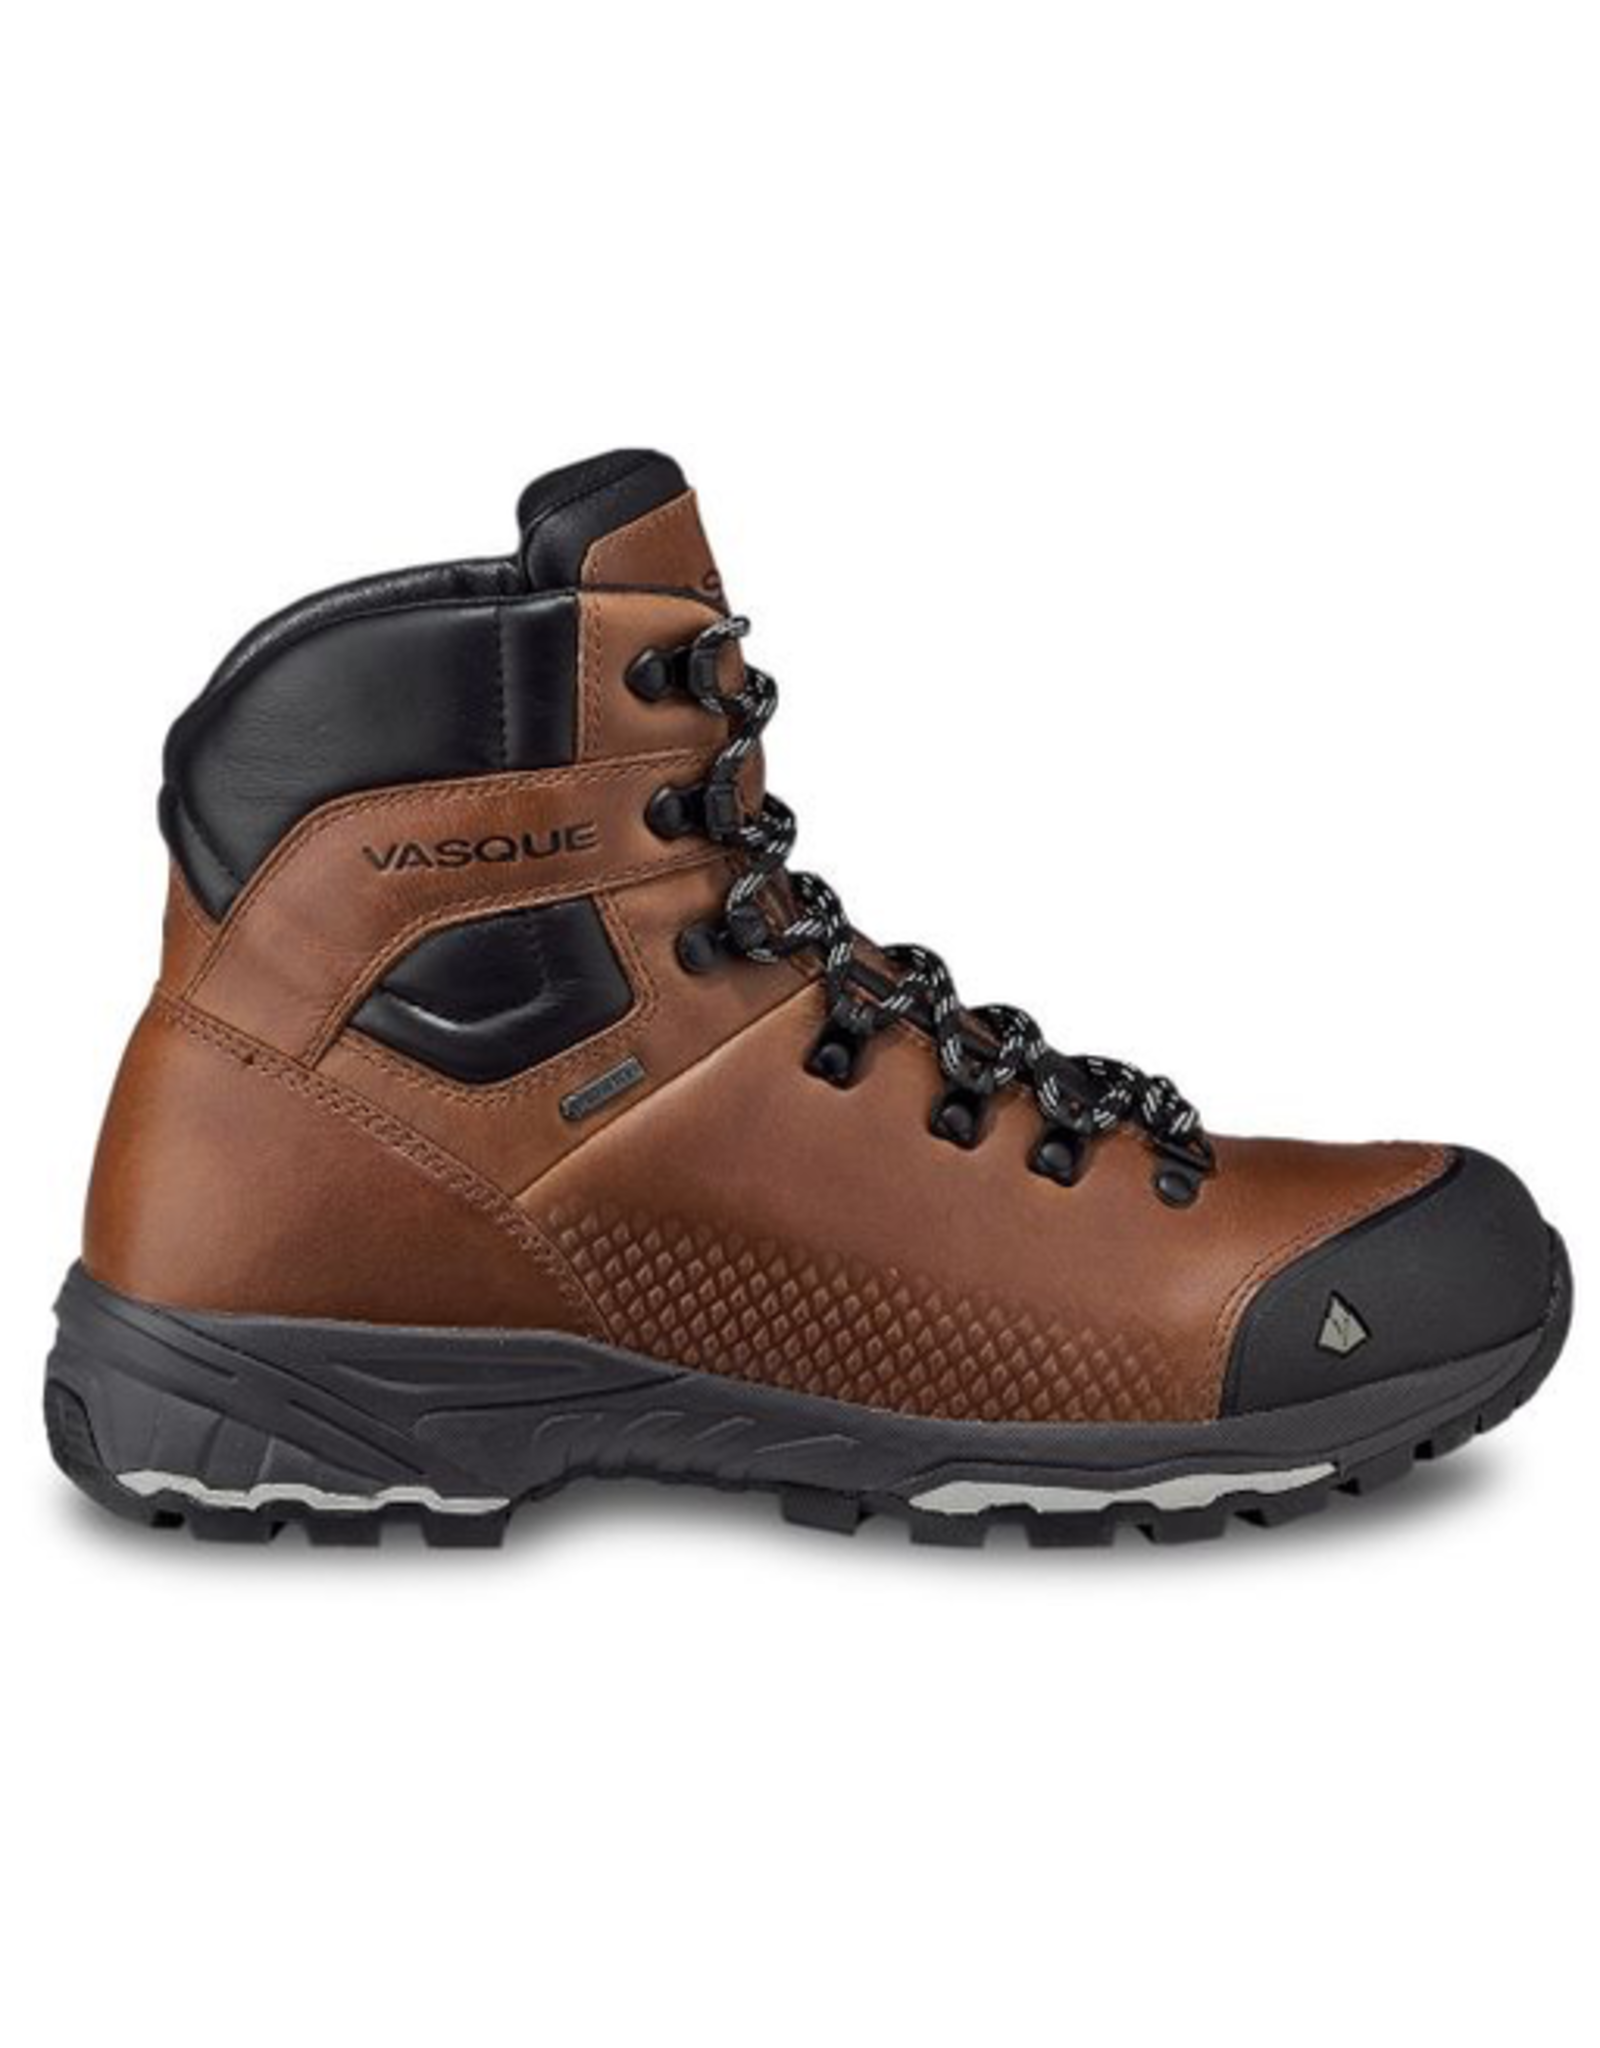 Vasque Vasque Men's St. Elias FG GTX